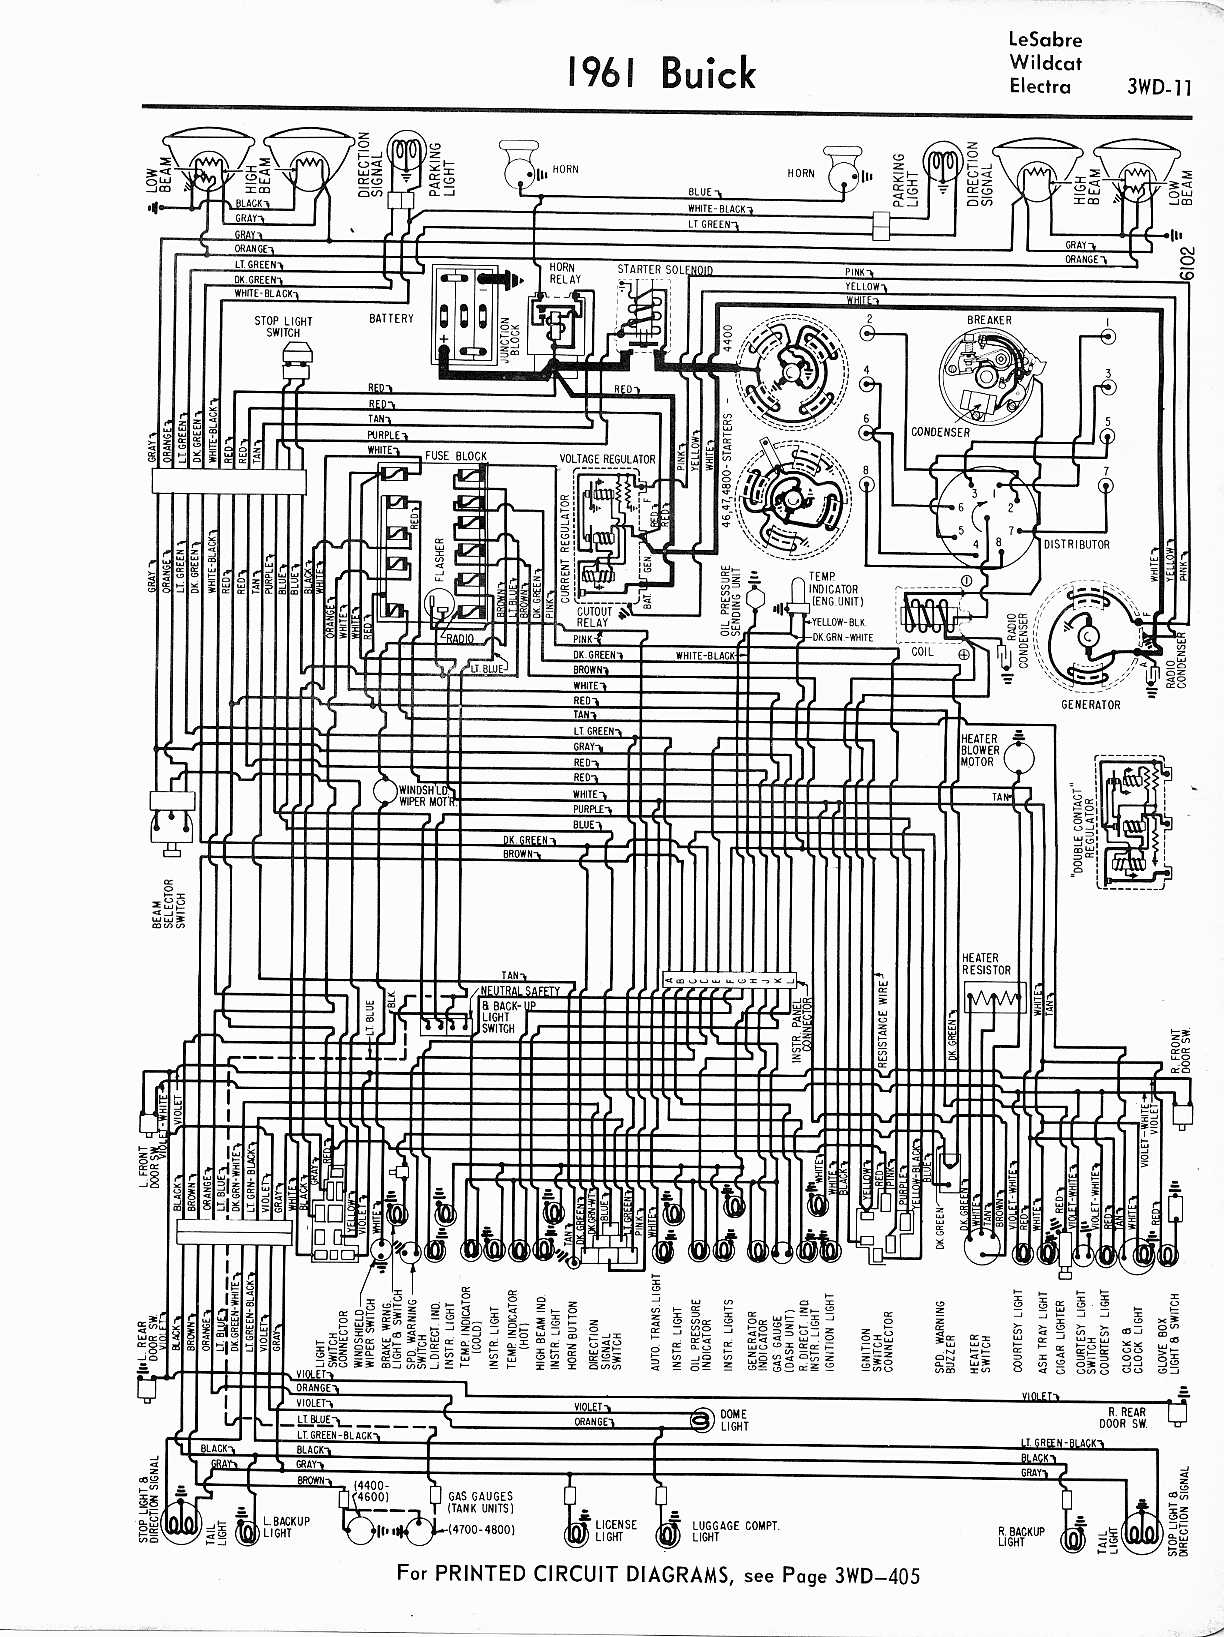 MWireBuic65_3WD 011 buick wiring diagrams 1957 1965 1999 buick century wiring diagram at gsmx.co